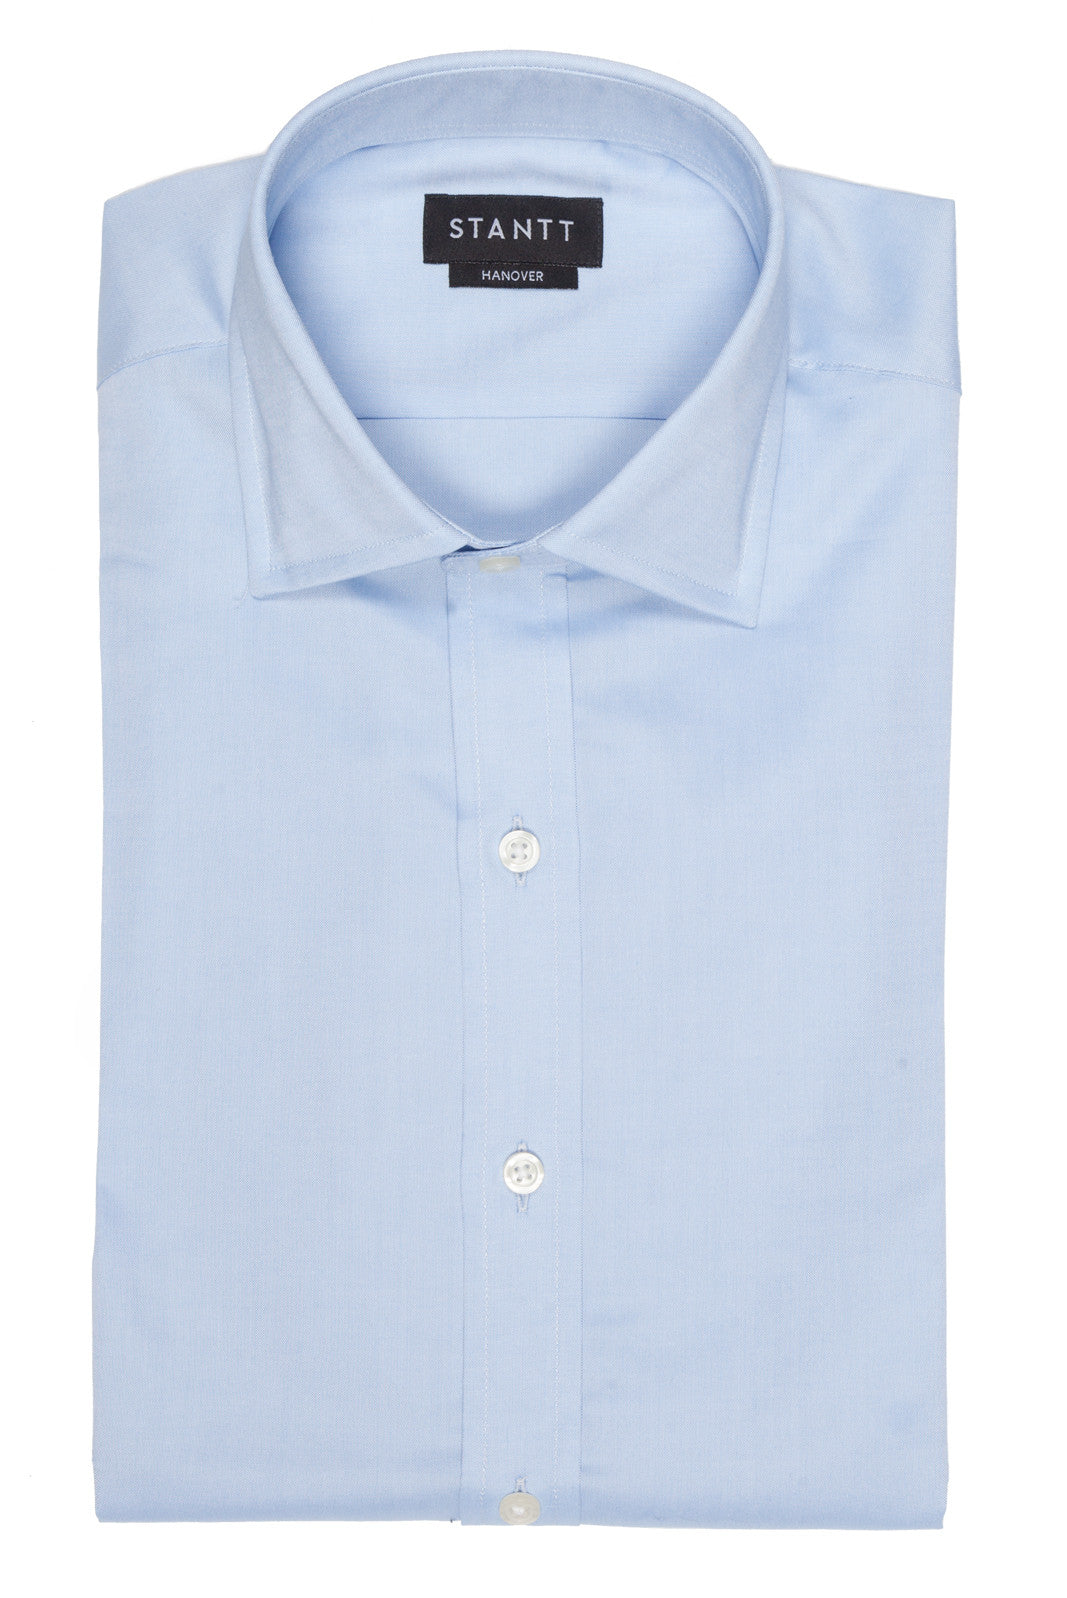 Light Blue Pinpoint Oxford: Semi-Spread Collar, French Cuff